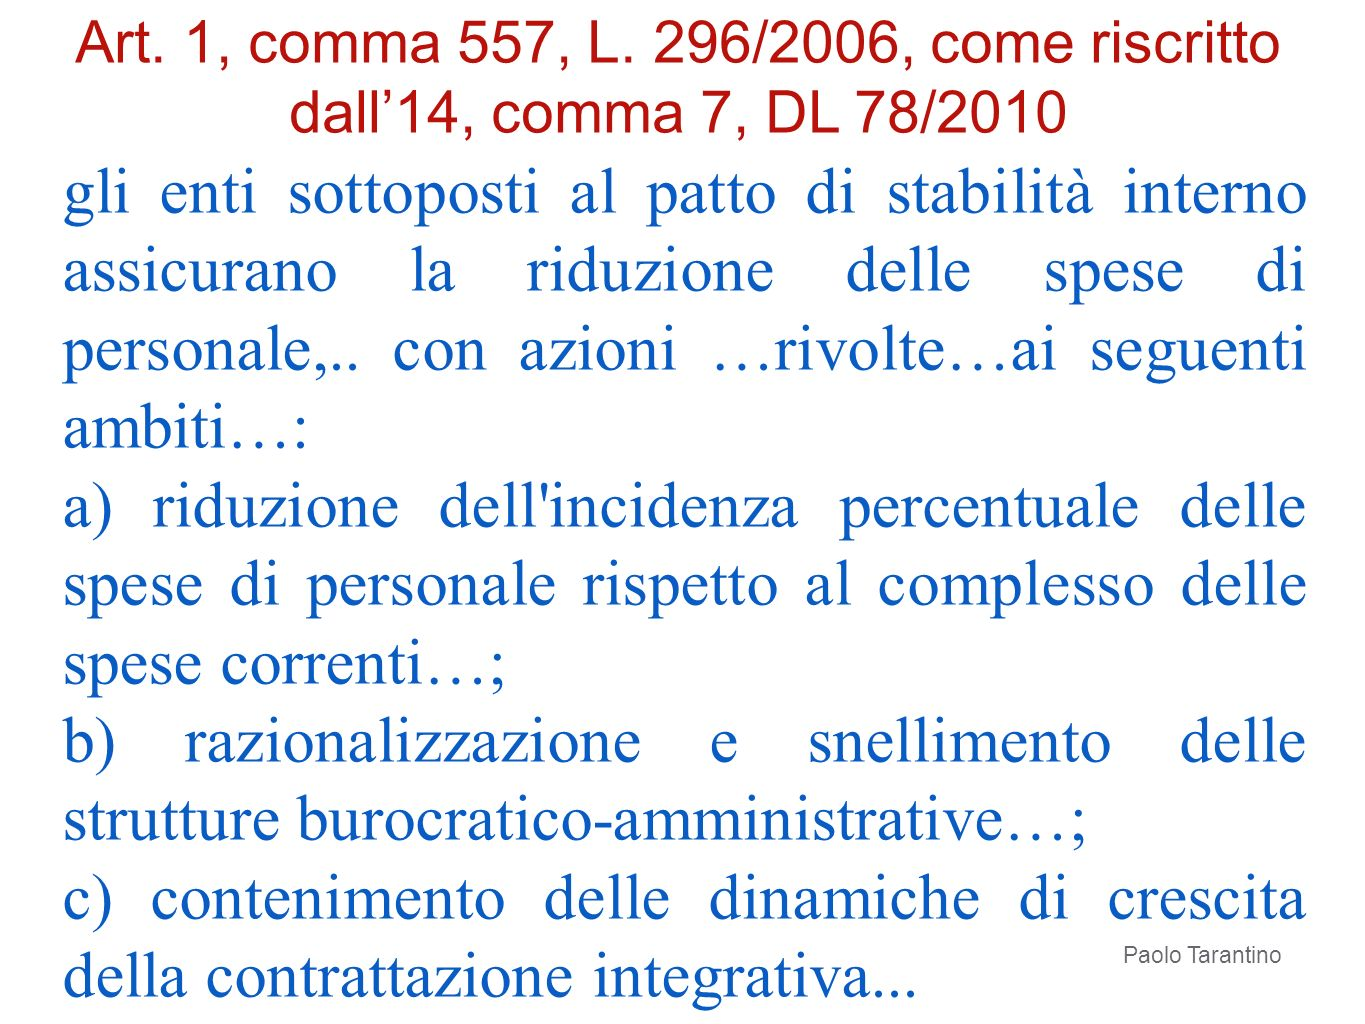 Art. 1, comma 557, L. 296/2006, come riscritto dall'14, comma 7, DL 78/2010